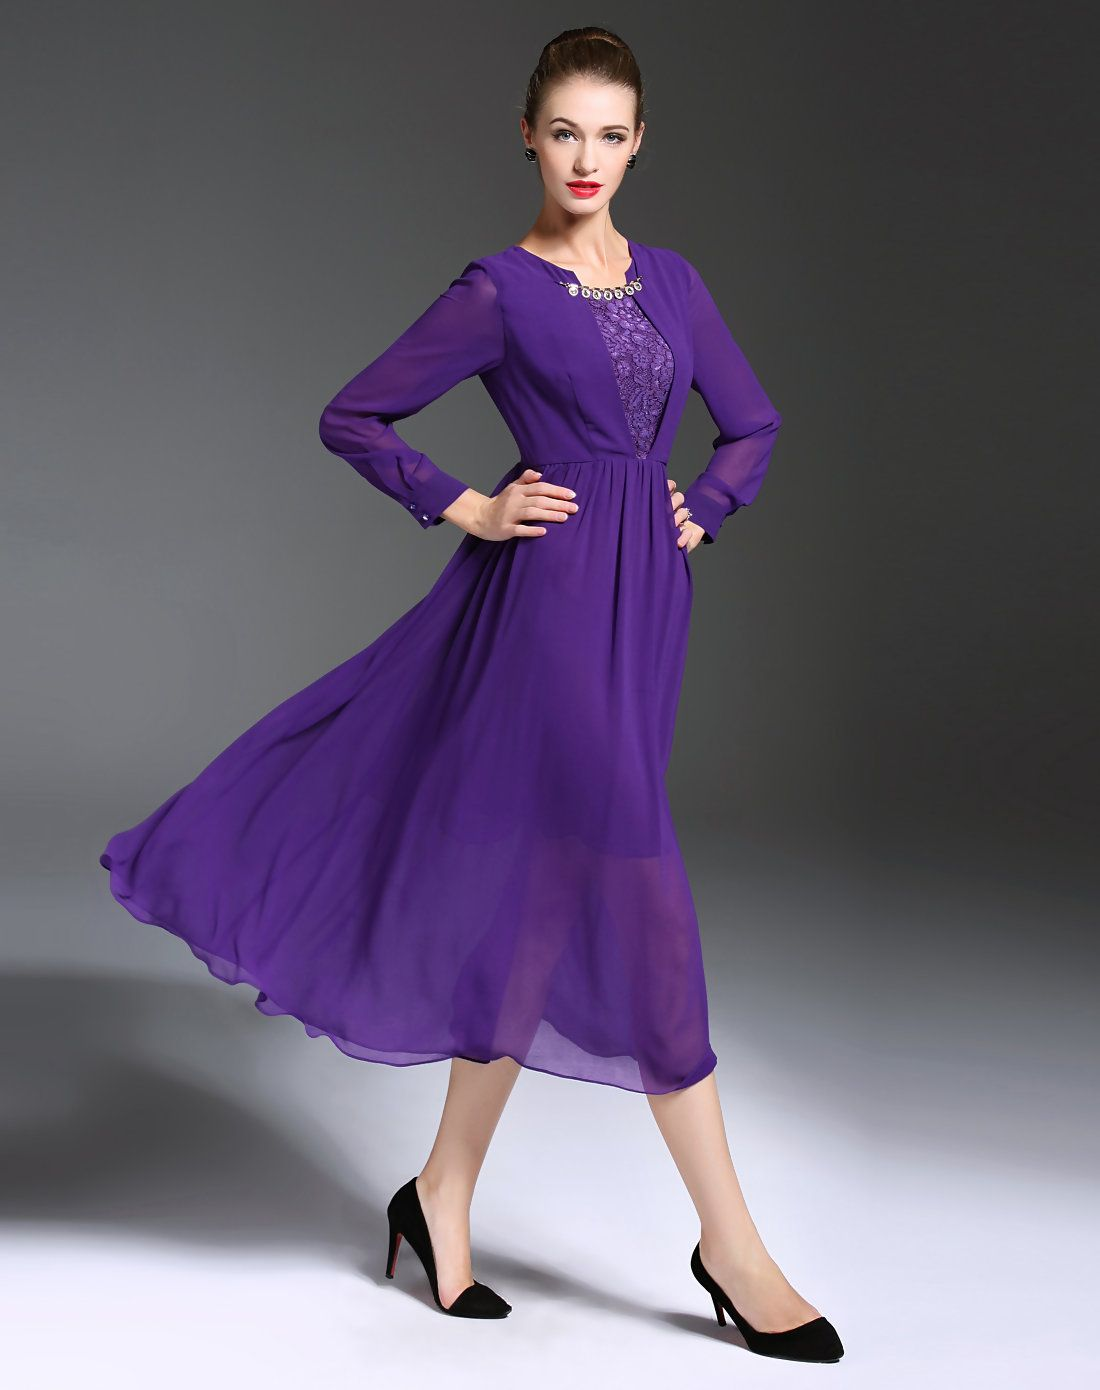 Adorewe vipme swing dresses gyalwana purple long sleeve elegant